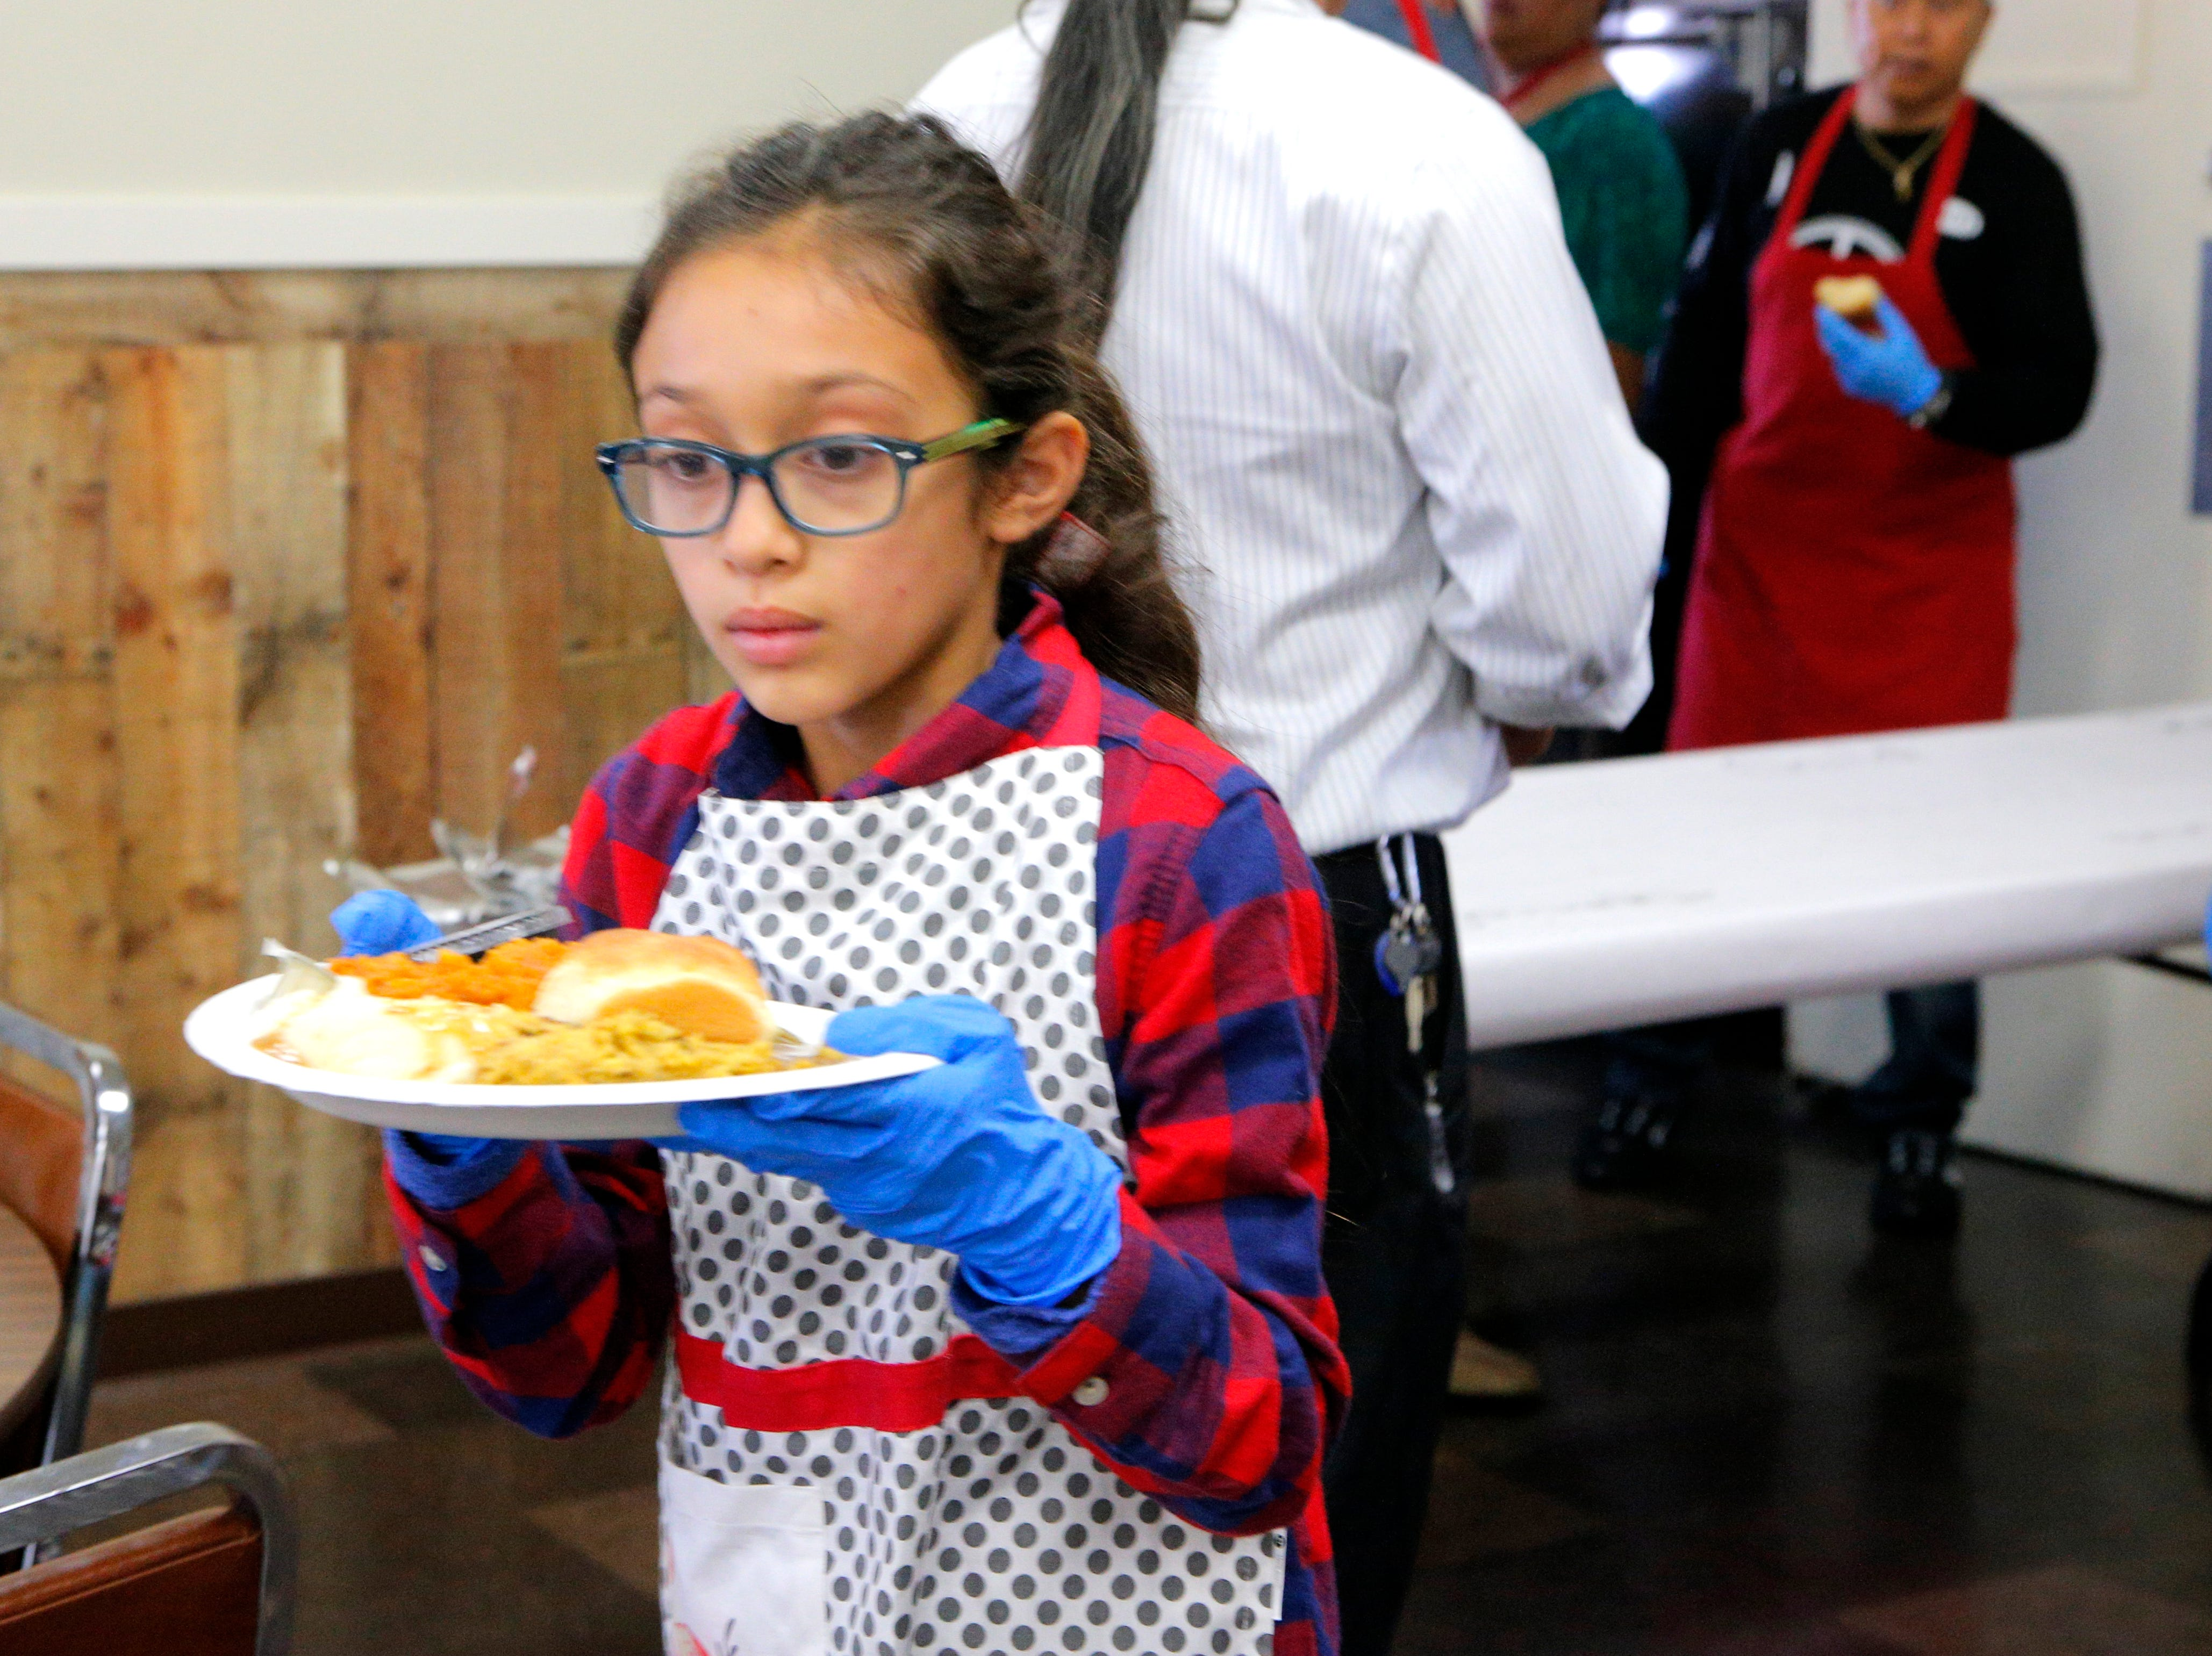 Juliana Jimenez, 8, serves a Thanksgiving meal at the American Legion Post 31.